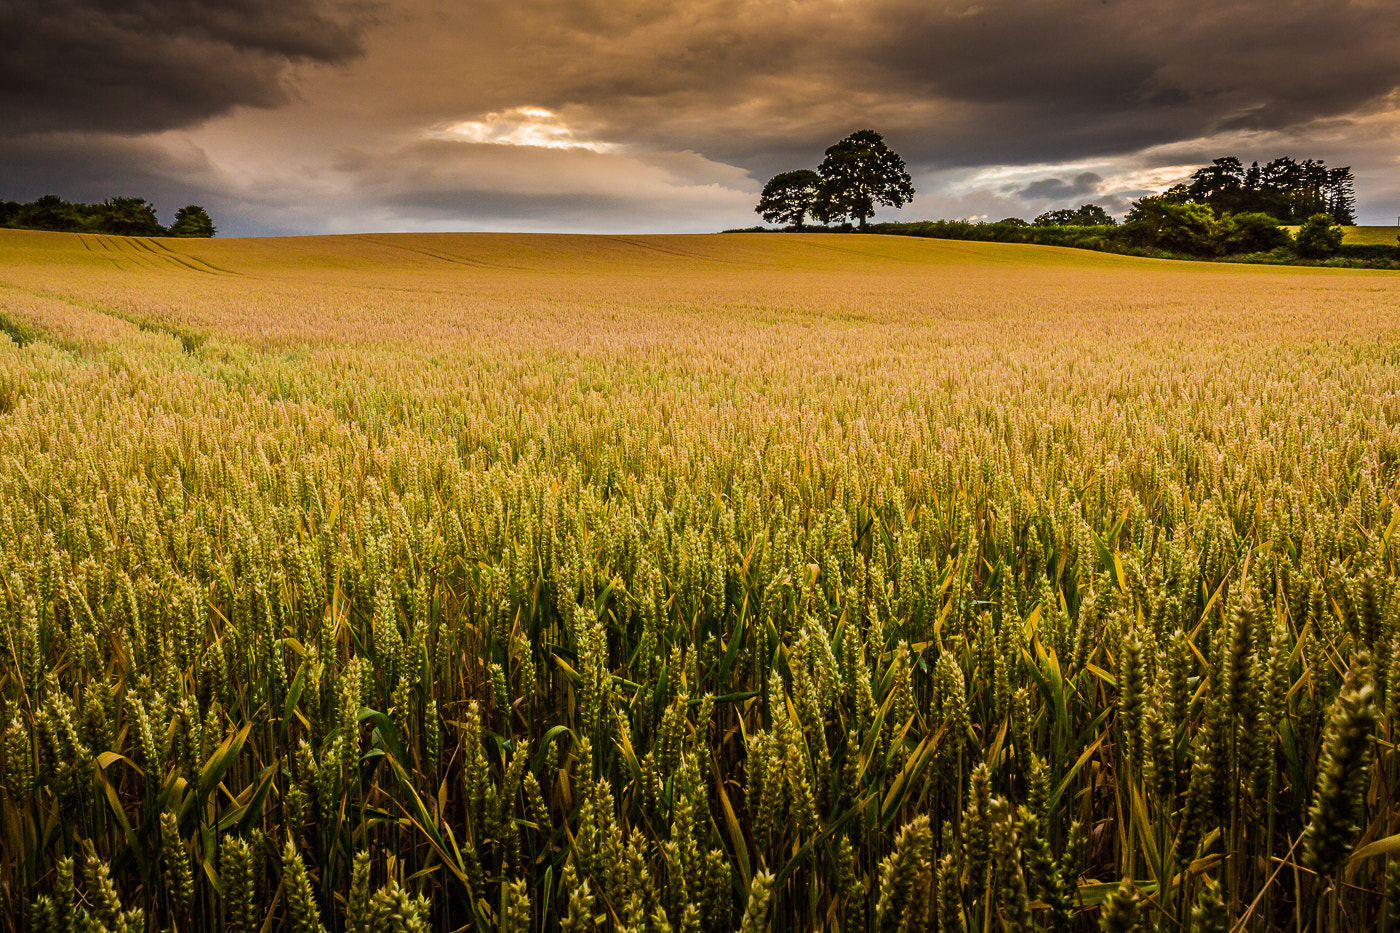 Photograph Barley Moods by Alan Coles on 500px